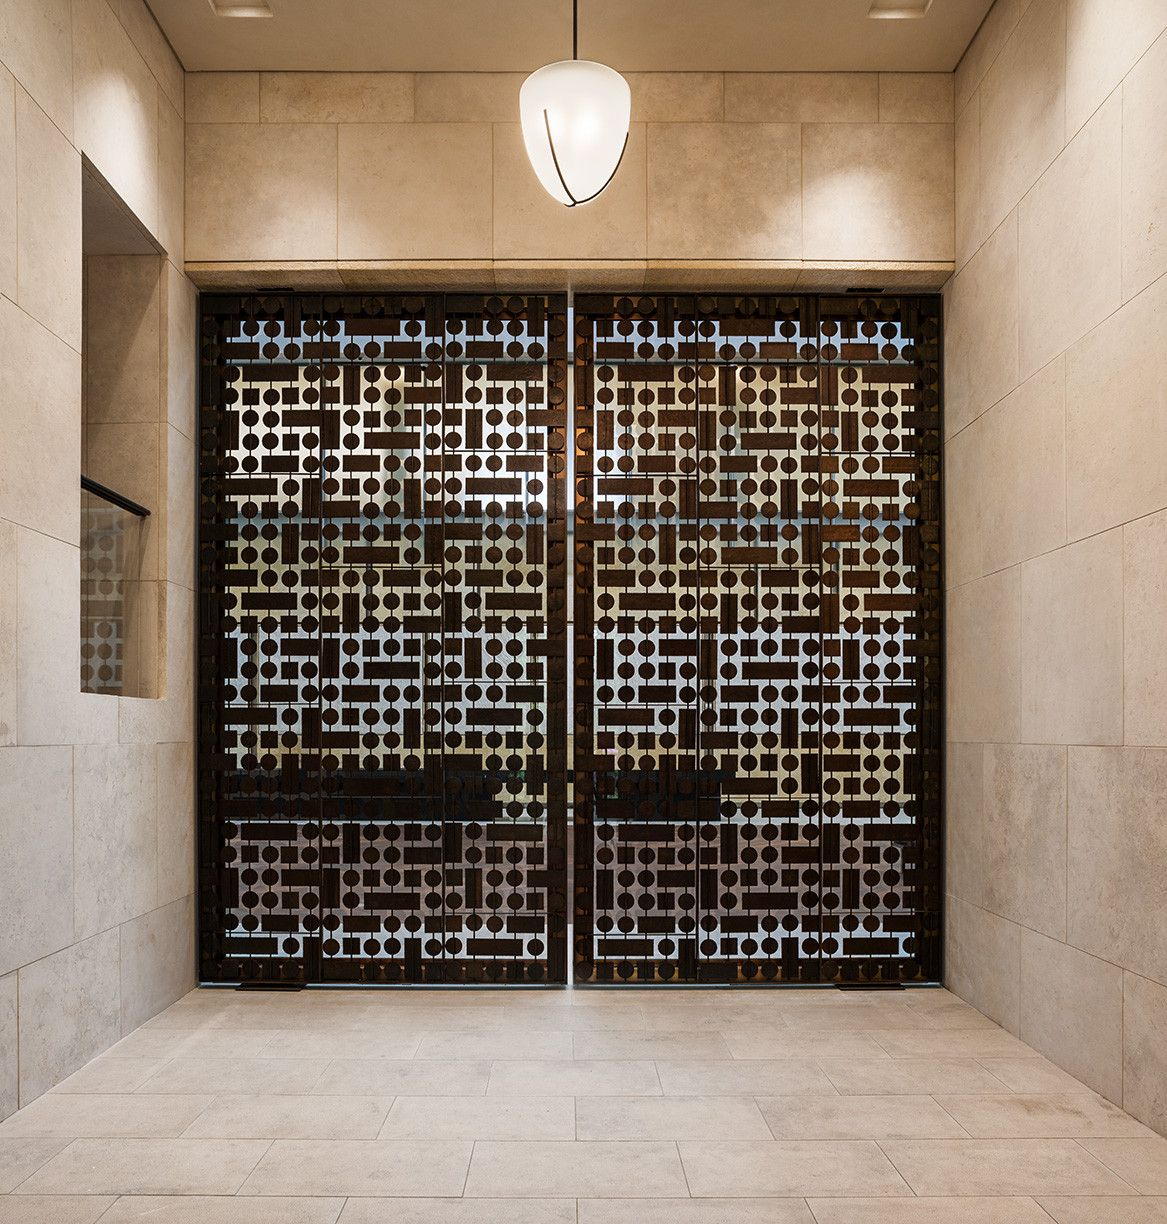 Image 19 of 35 from gallery of The Barnes Foundation / Tod Williams + Billie Tsien. Photograph by The Barnes Foundation